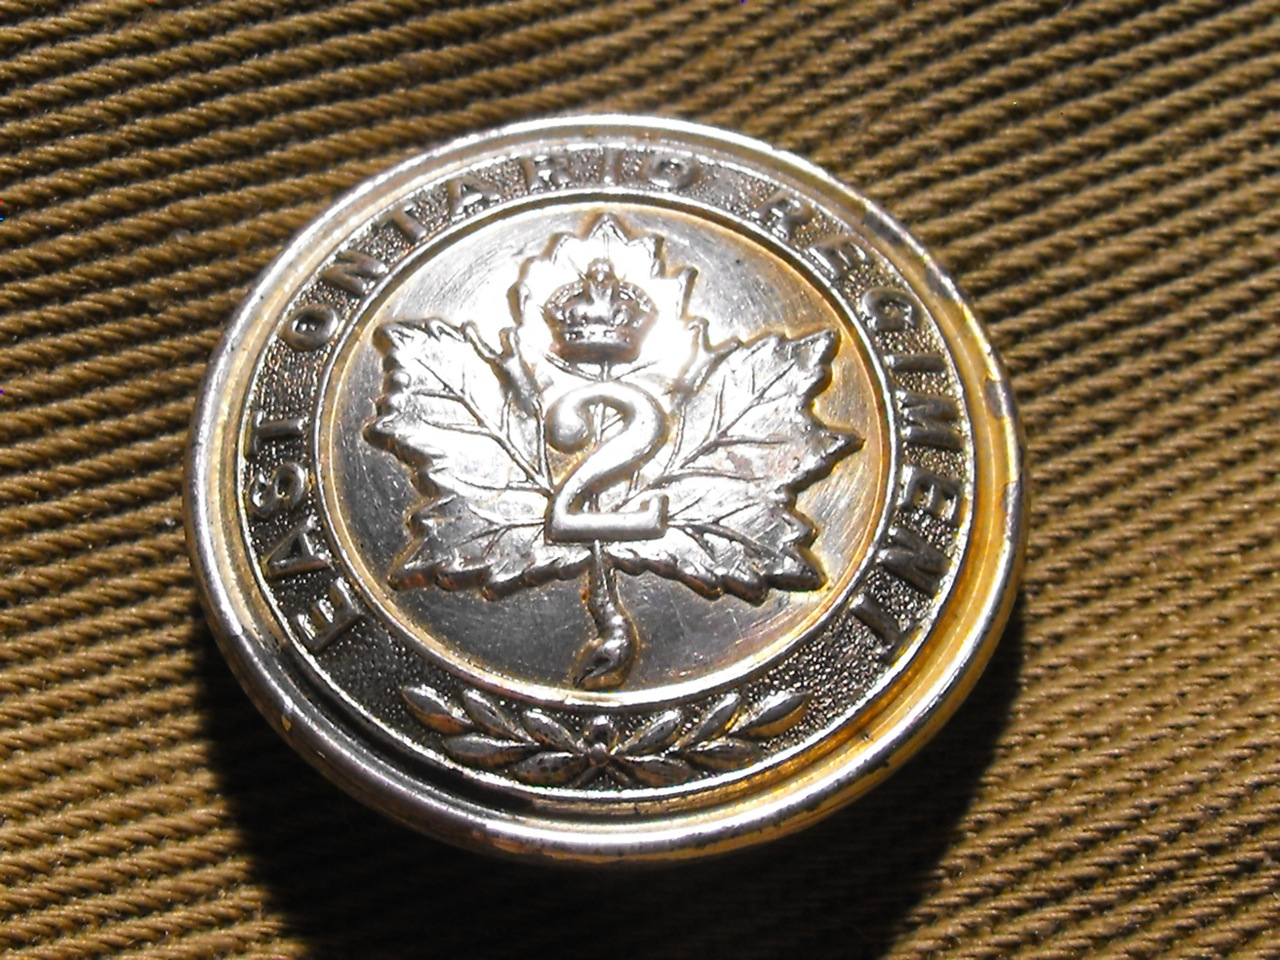 WW1 Cdn. 2nd Bn. Button